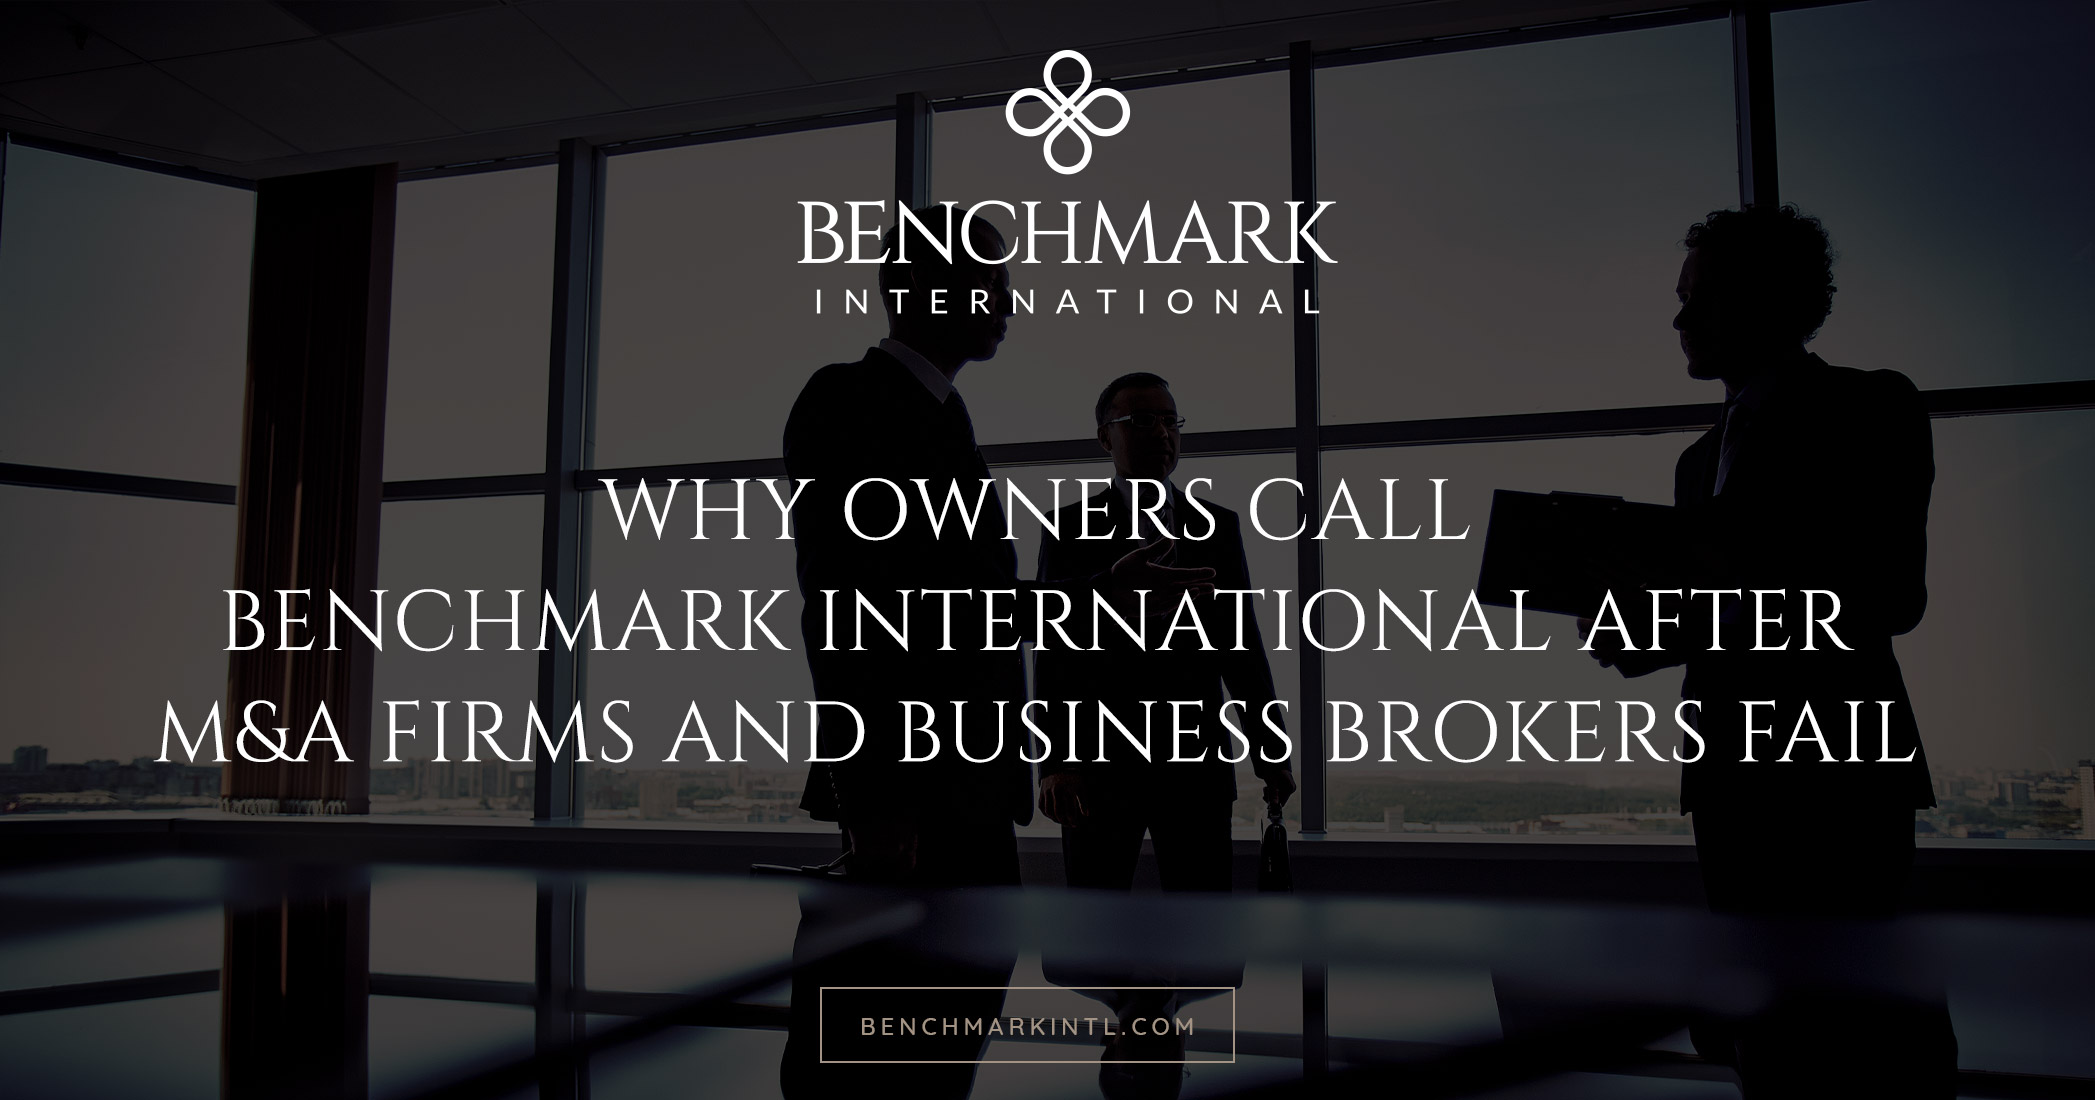 Why Owners Call Benchmark International after M&A Firms and Business Brokers Fail